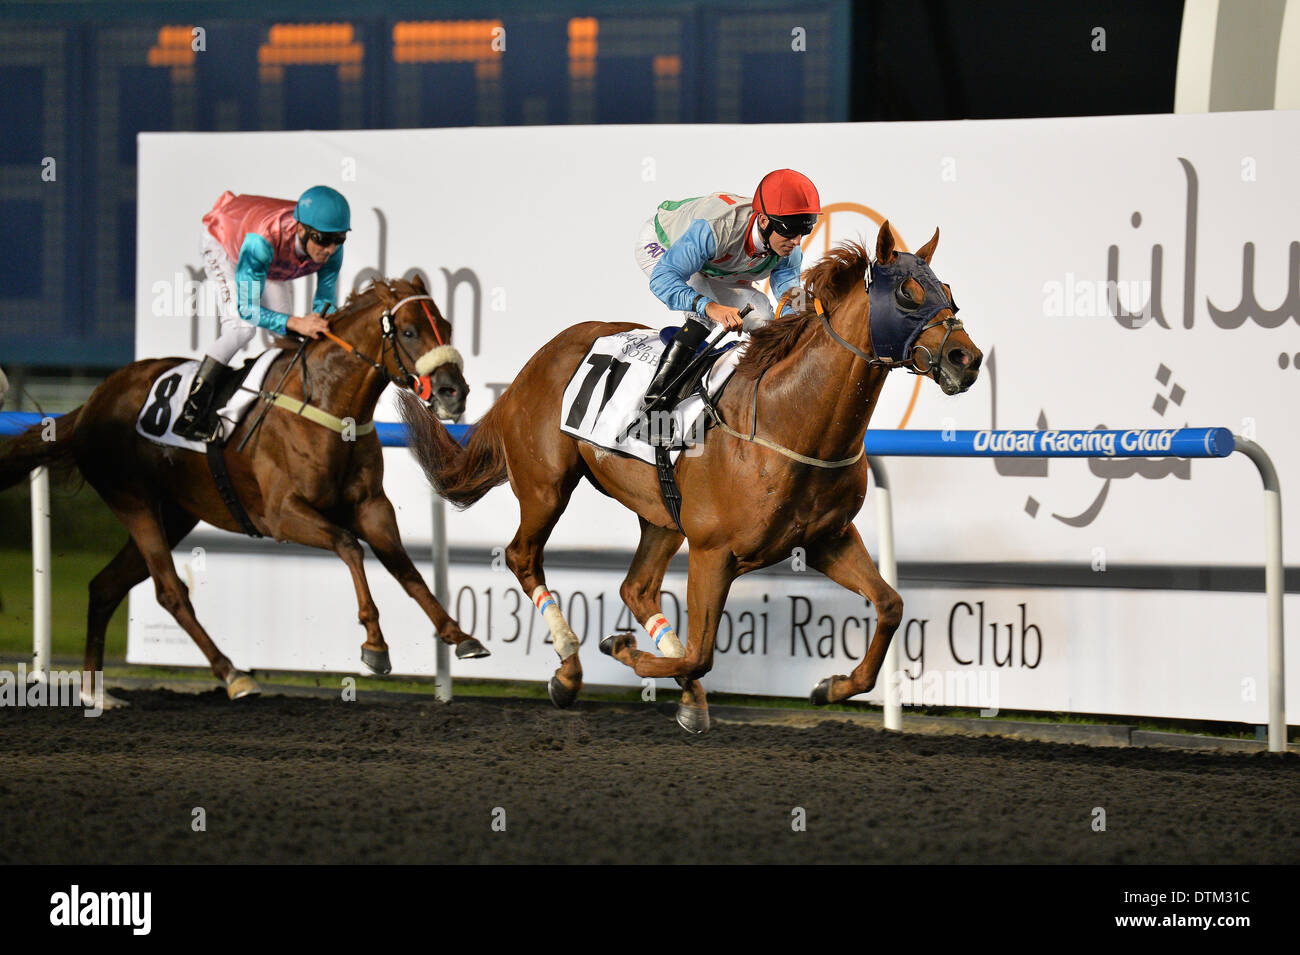 DUBAI, UAE, 20th Feb 2014. AVON PEARL ridden by Patrick Dobbs wins the Meydan Sobha at the Meydan race track. The horse is trained by R Haugen and owned by Jostein Jorgensen Credit:  Feroz Khan/Alamy Live News - Stock Image